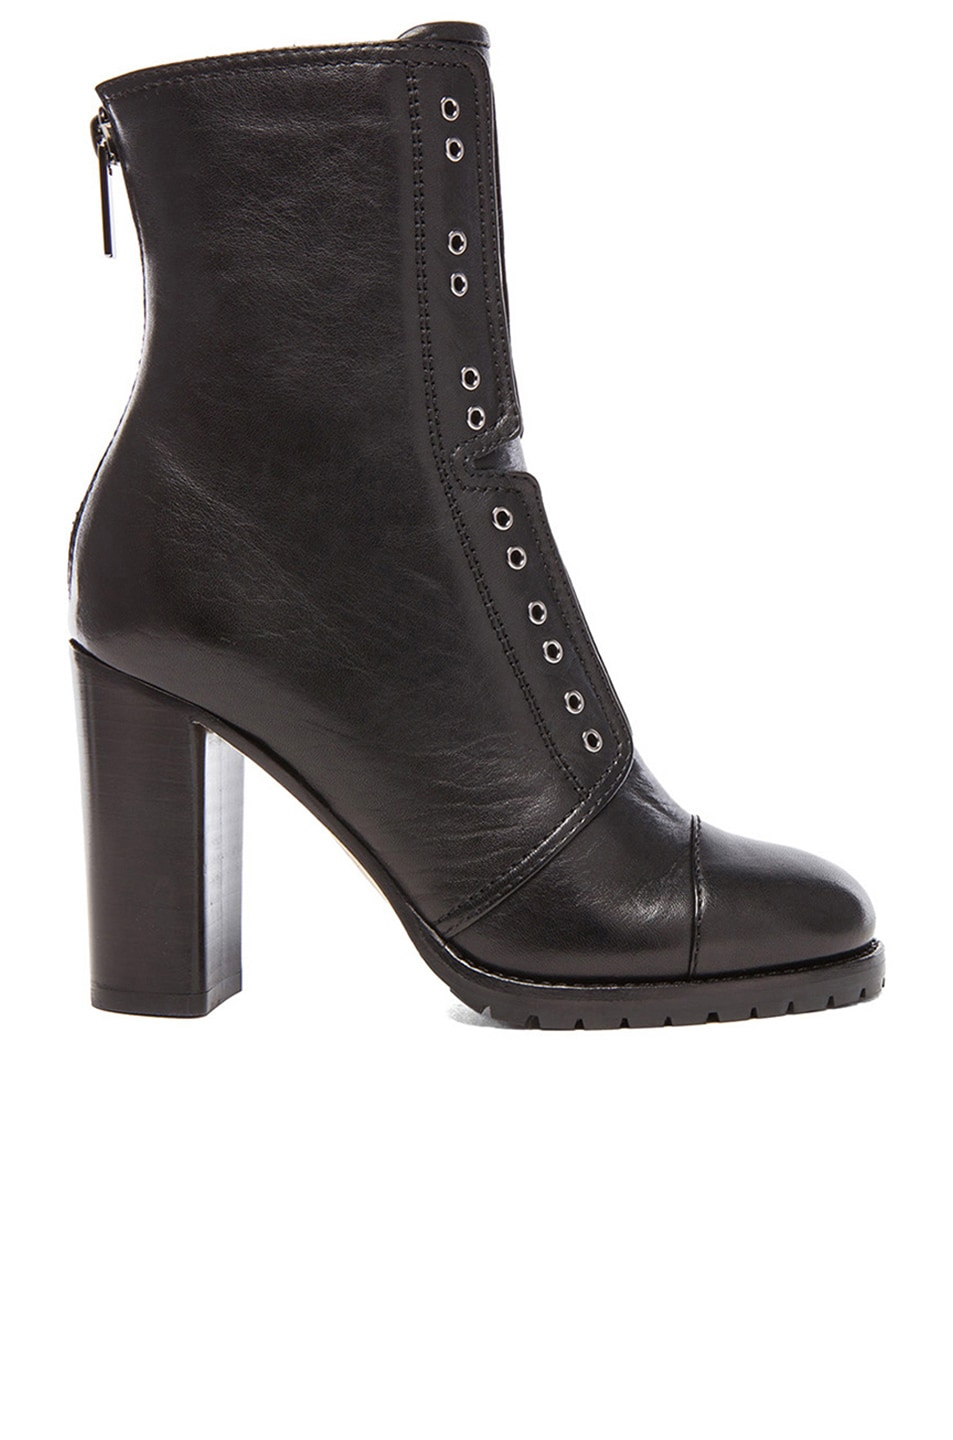 Image 1 of Jimmy Choo Leather Datchet Leather Combat Boots in black